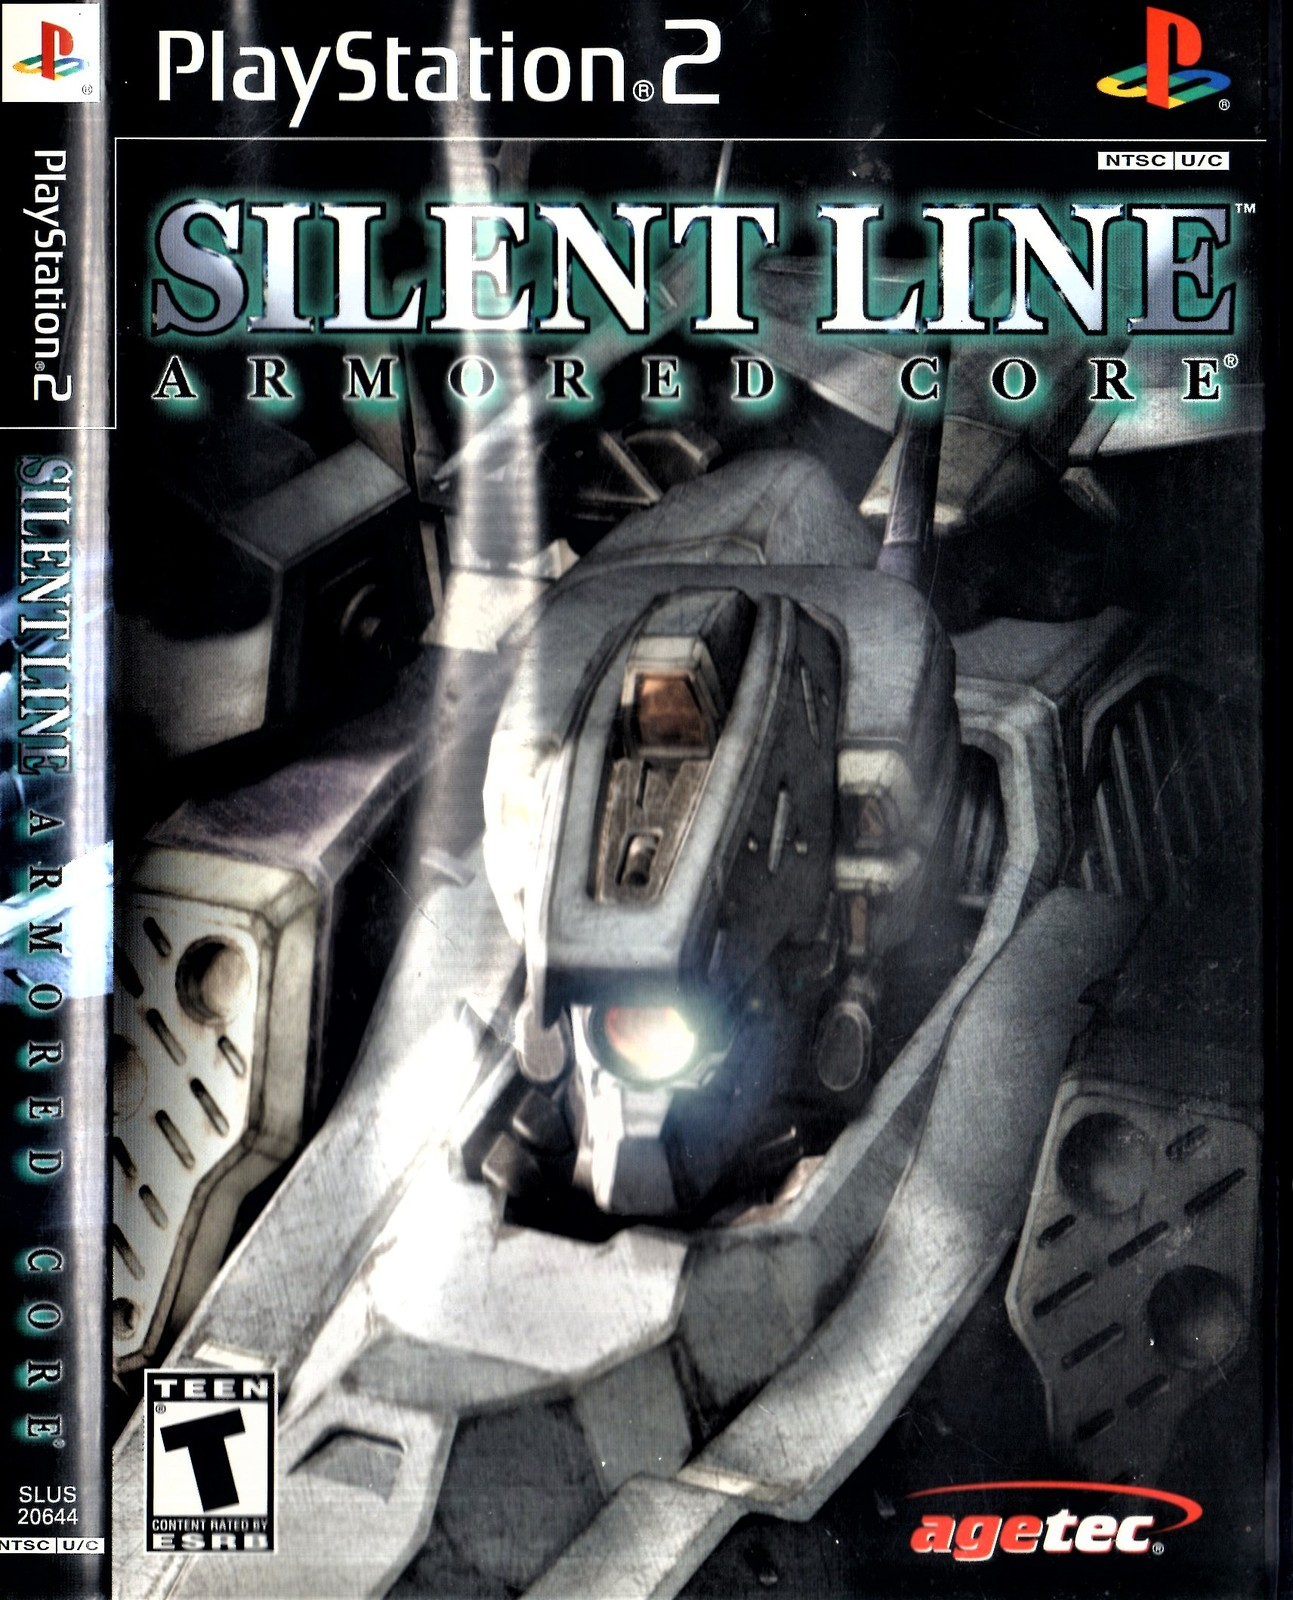 PlaySyayion 2 - Armored Core - Silent Line